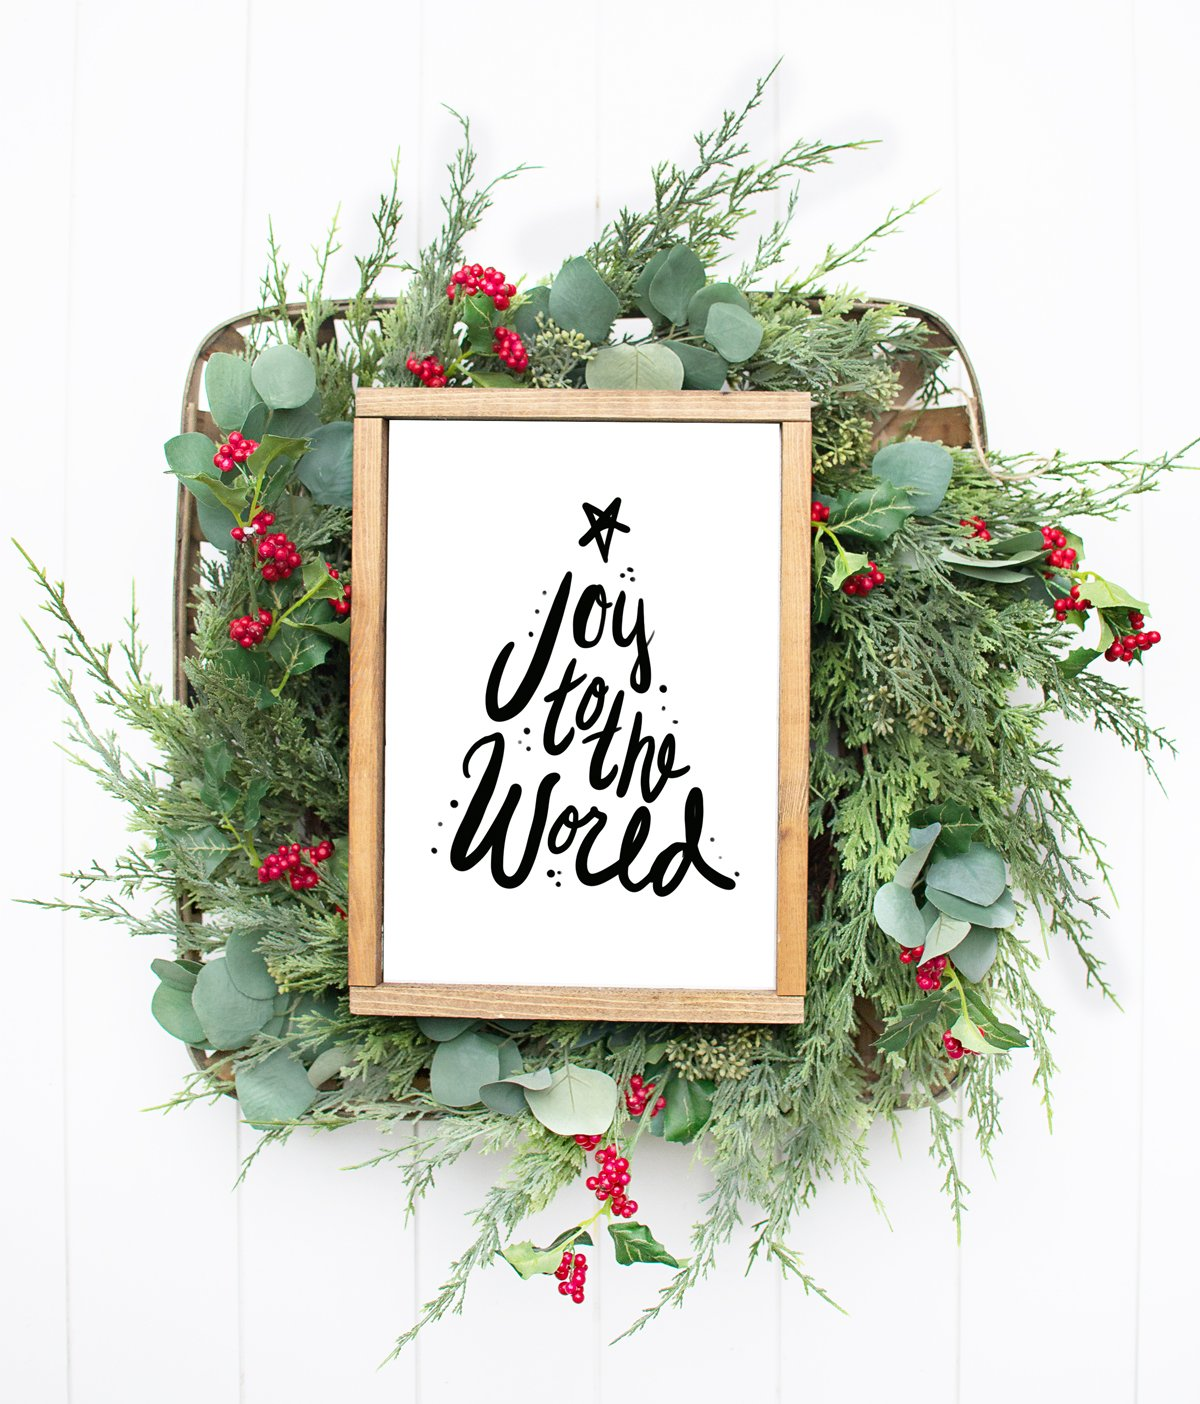 Joy to the world handlettered artwork